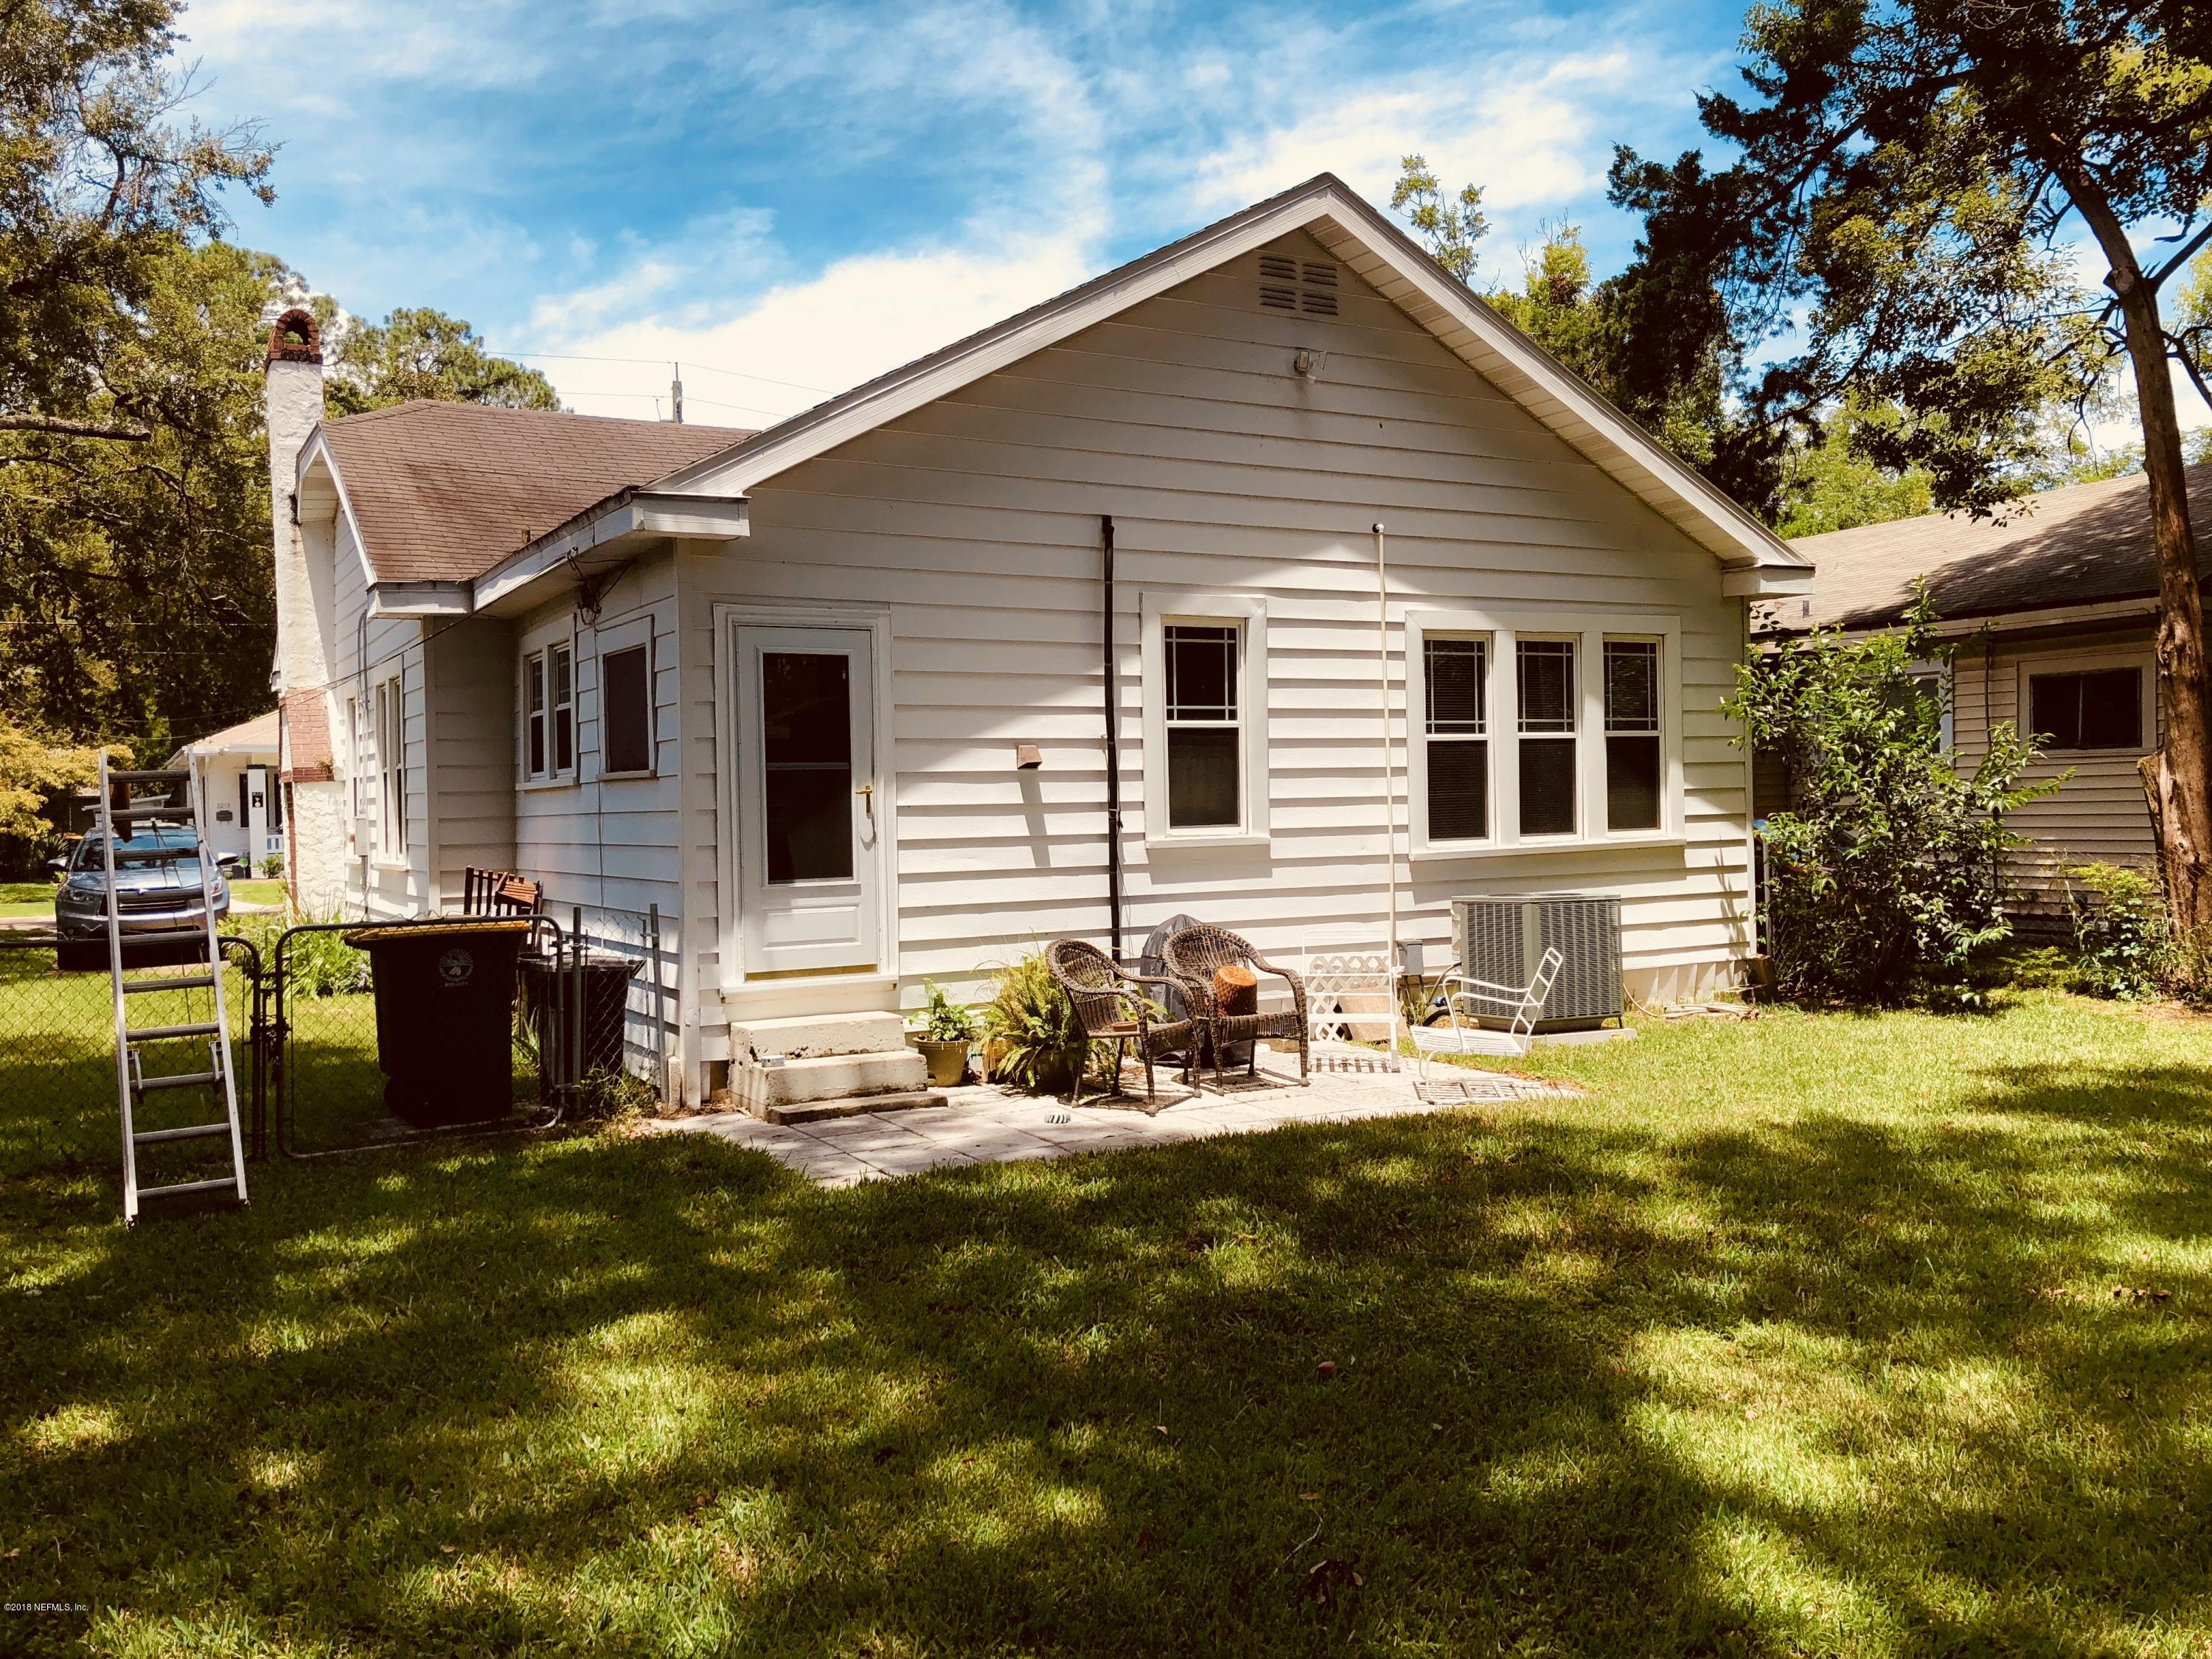 3216 REMINGTON, JACKSONVILLE, FLORIDA 32205, 3 Bedrooms Bedrooms, ,1 BathroomBathrooms,Residential - single family,For sale,REMINGTON,959258